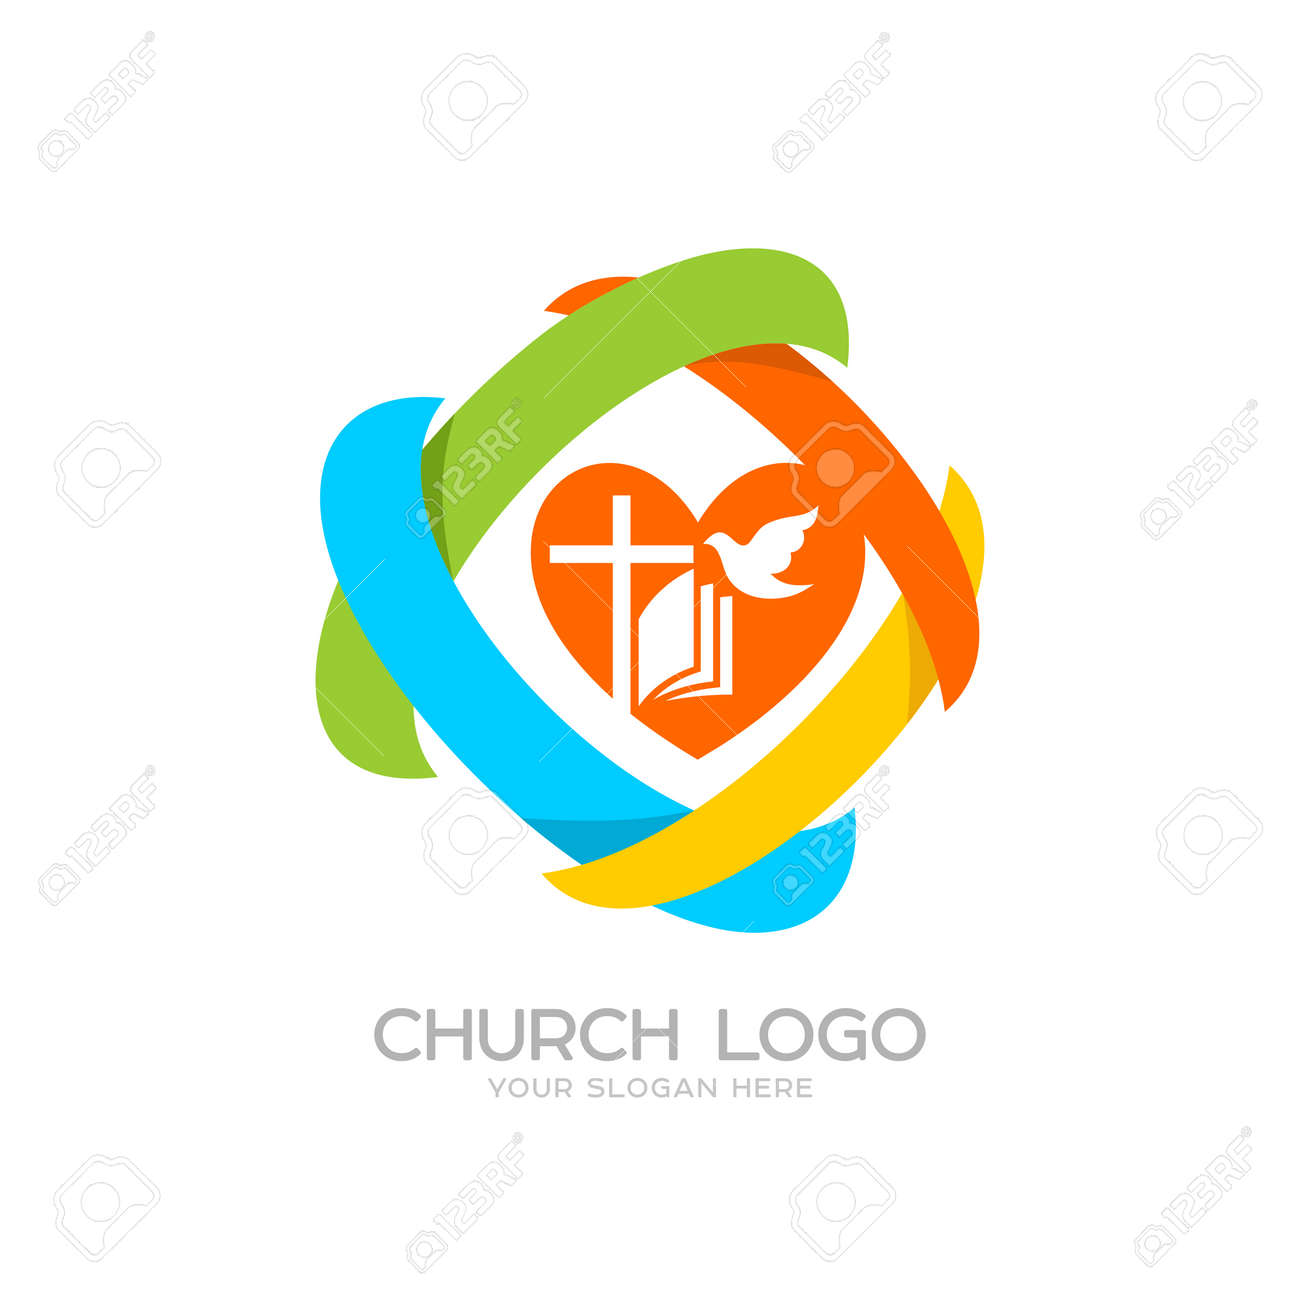 Church logo cristian symbols jesus cross bible dove heart church logo cristian symbols jesus cross bible dove heart and colored altavistaventures Images